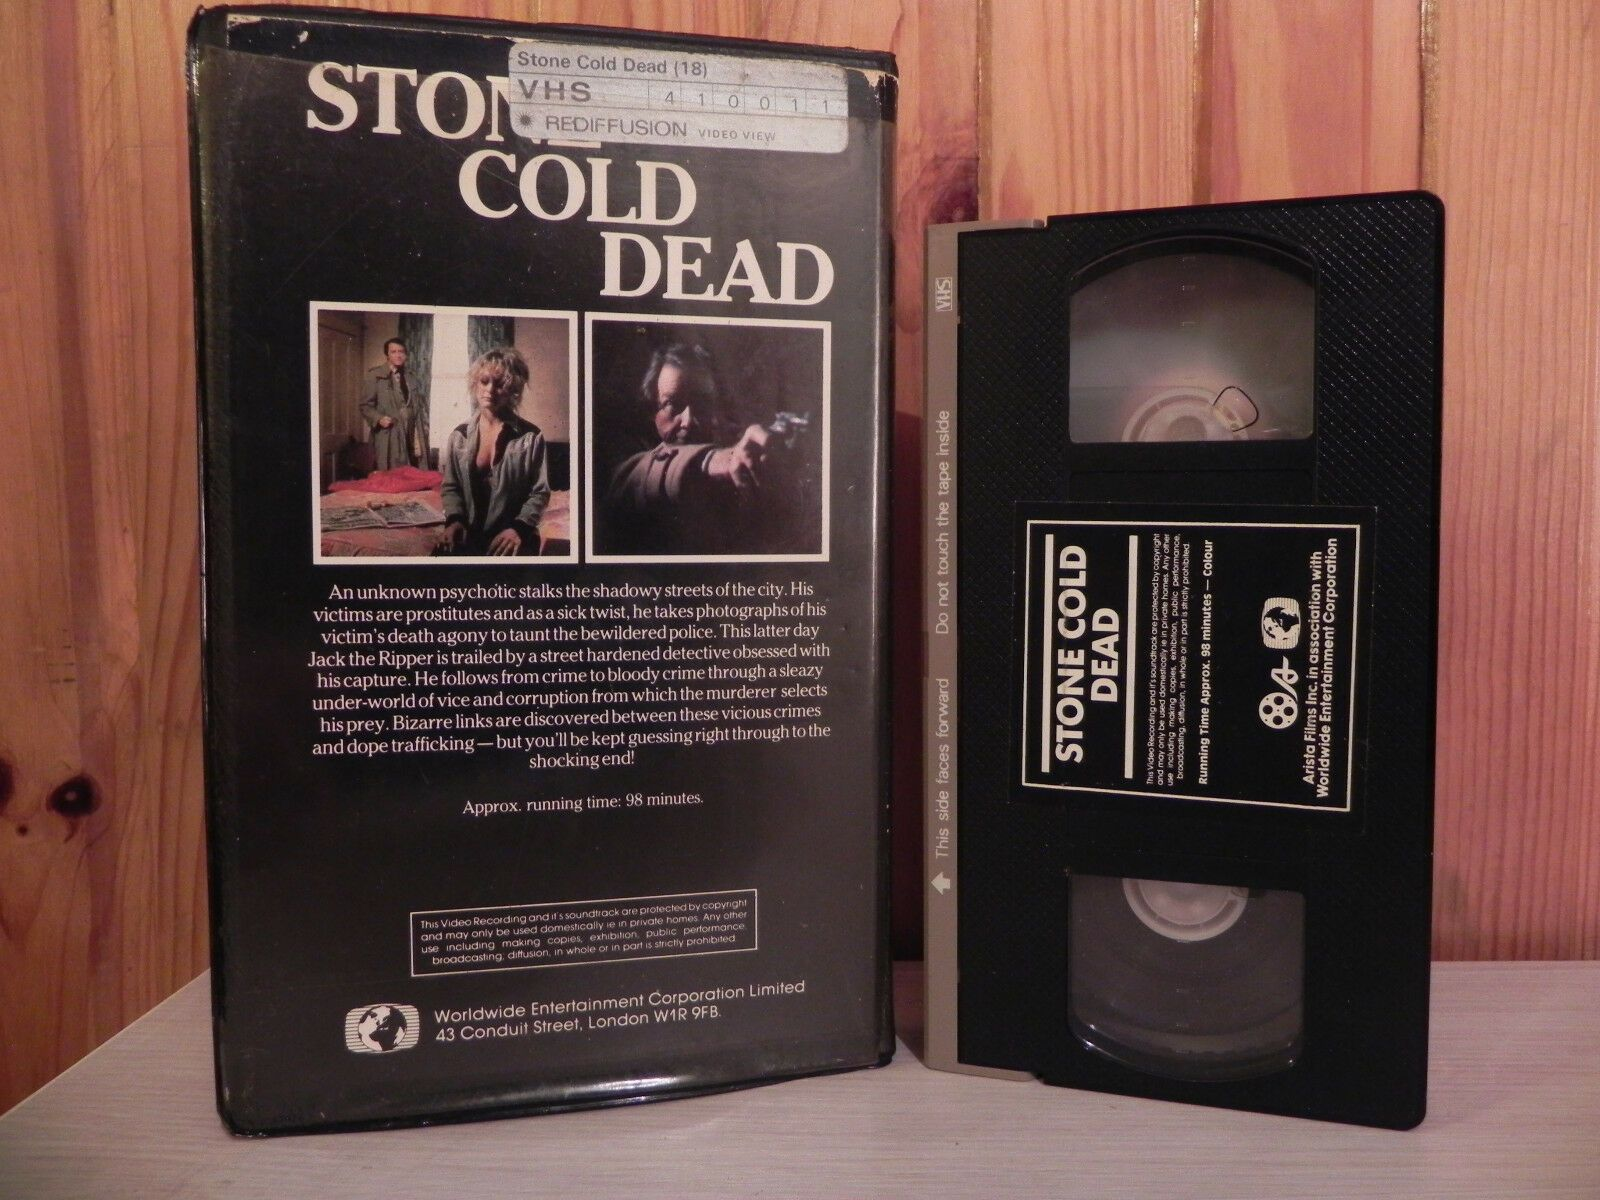 Stone Cold Dead - Big Box - Ex-Rental - Crime Thriller - Pre-Cert Video - VHS